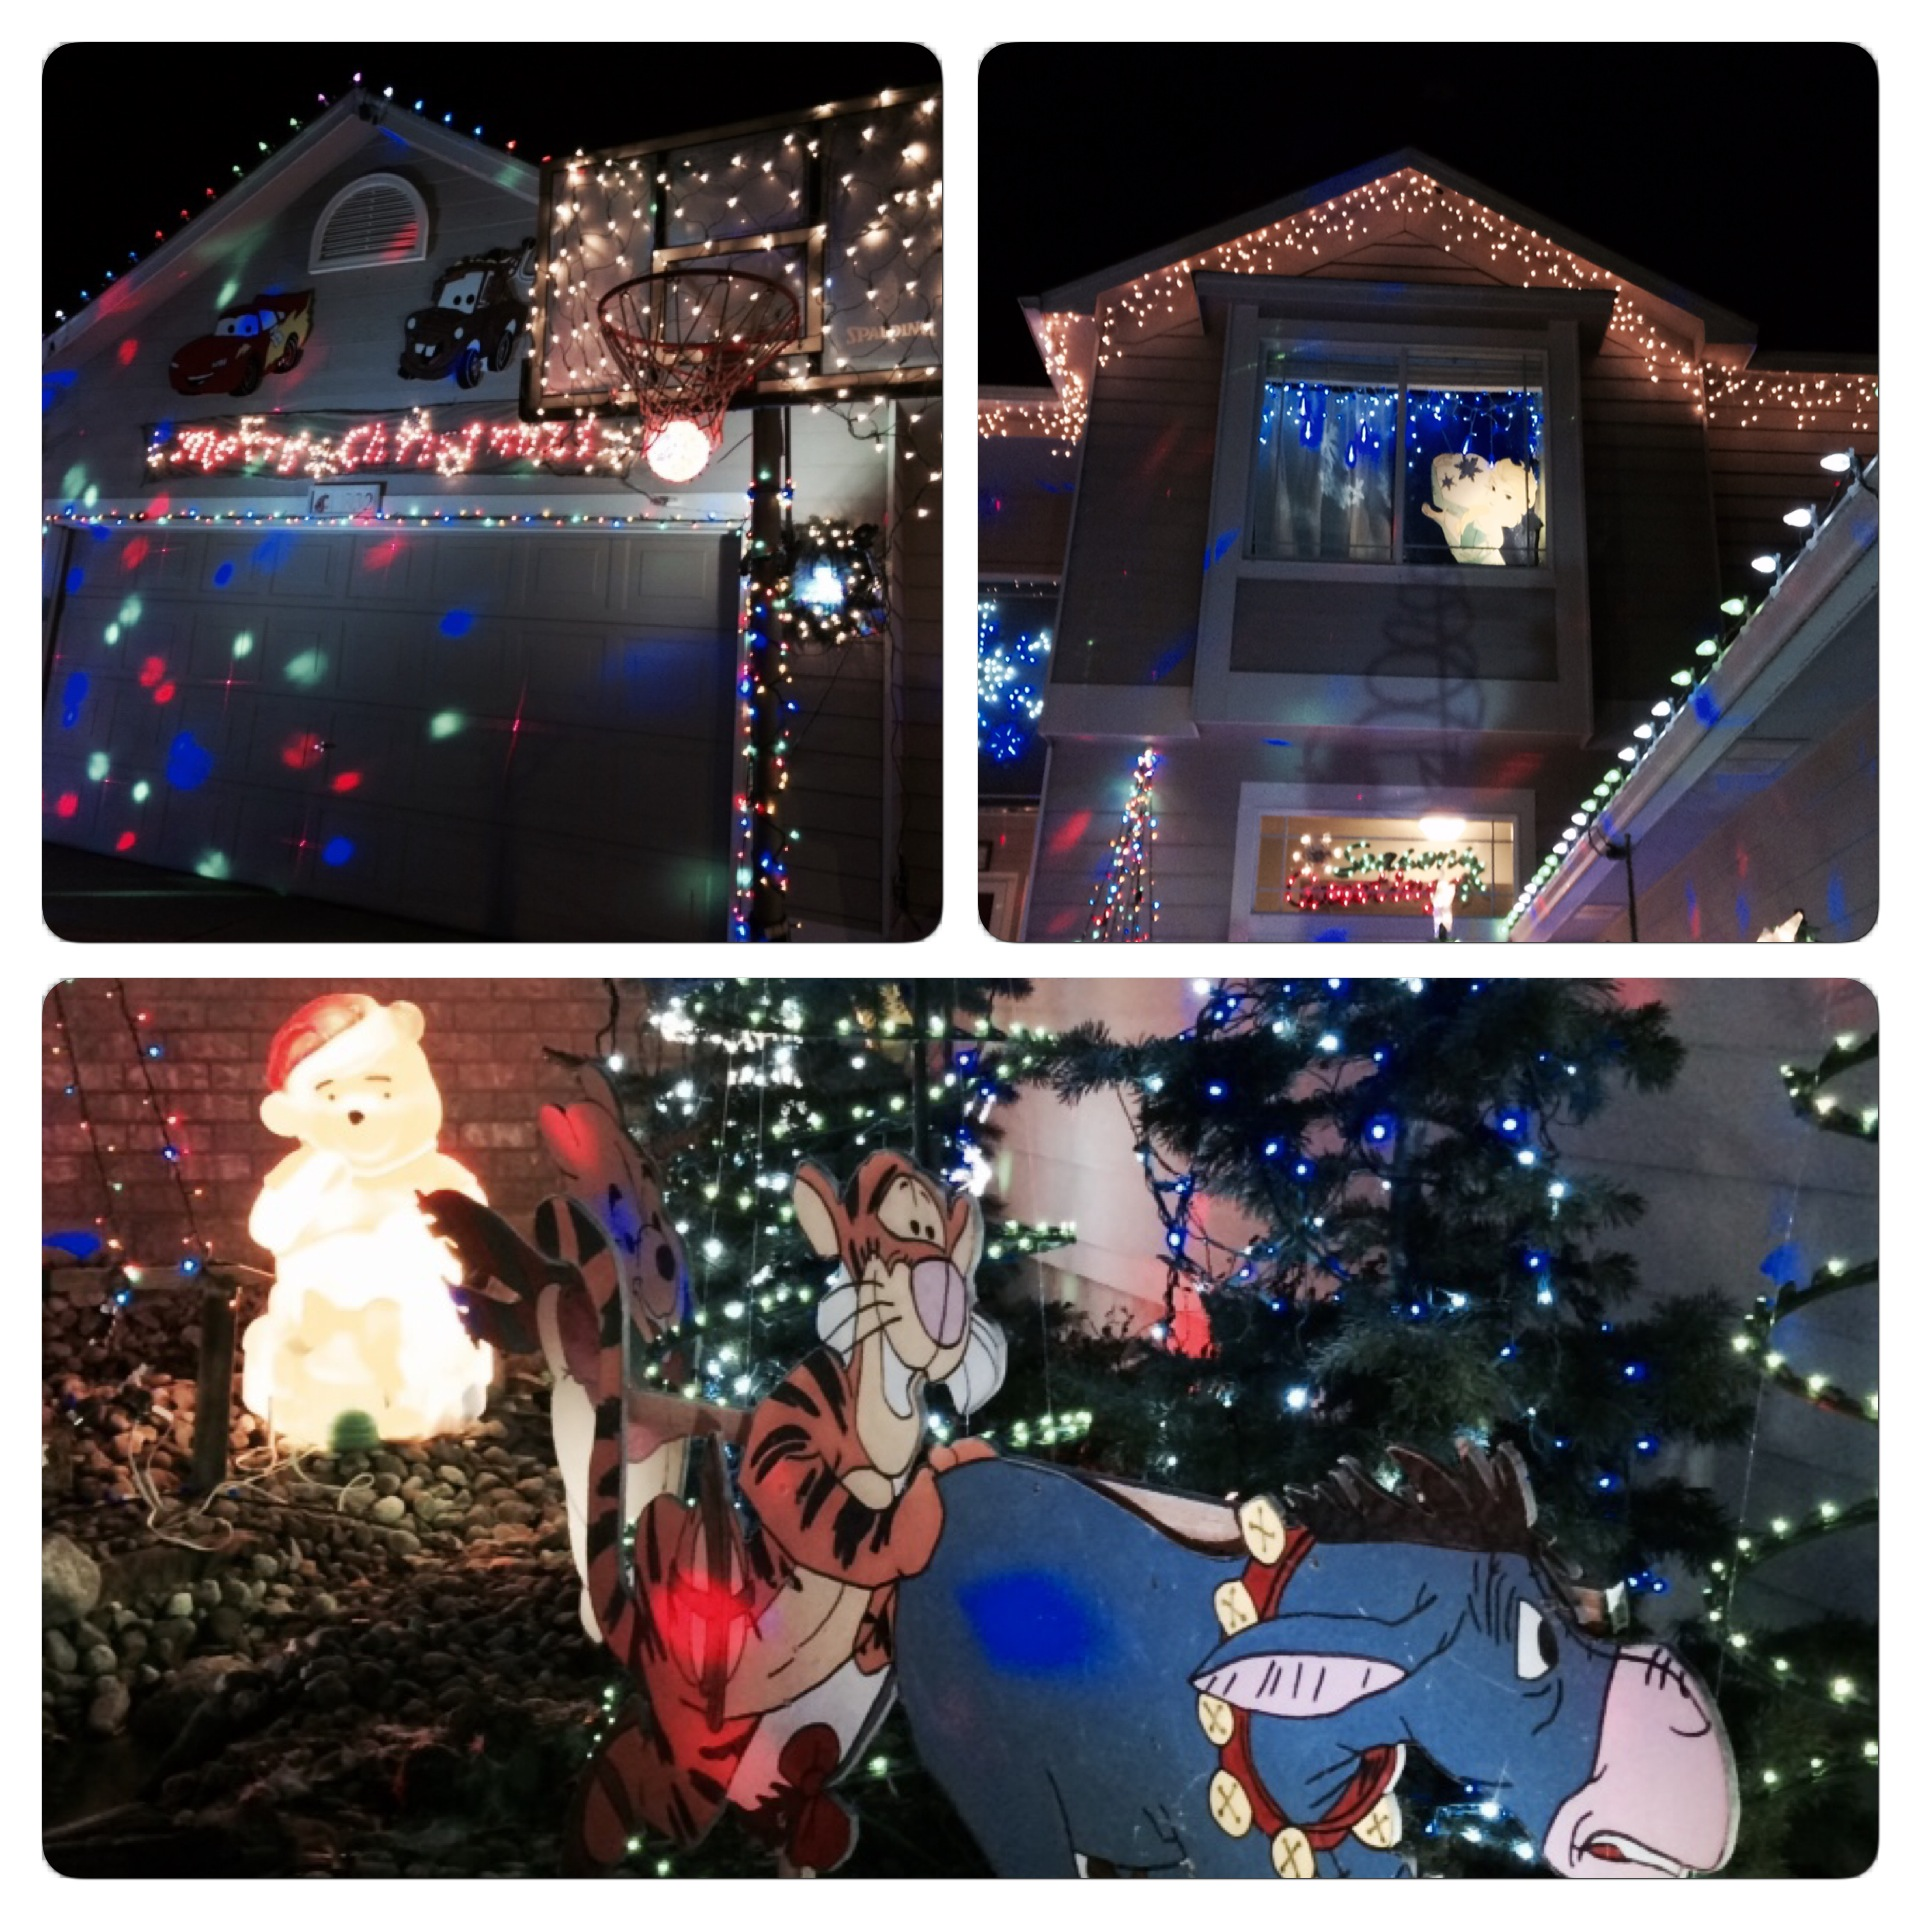 Even the basketball hoop and windows were decorated.